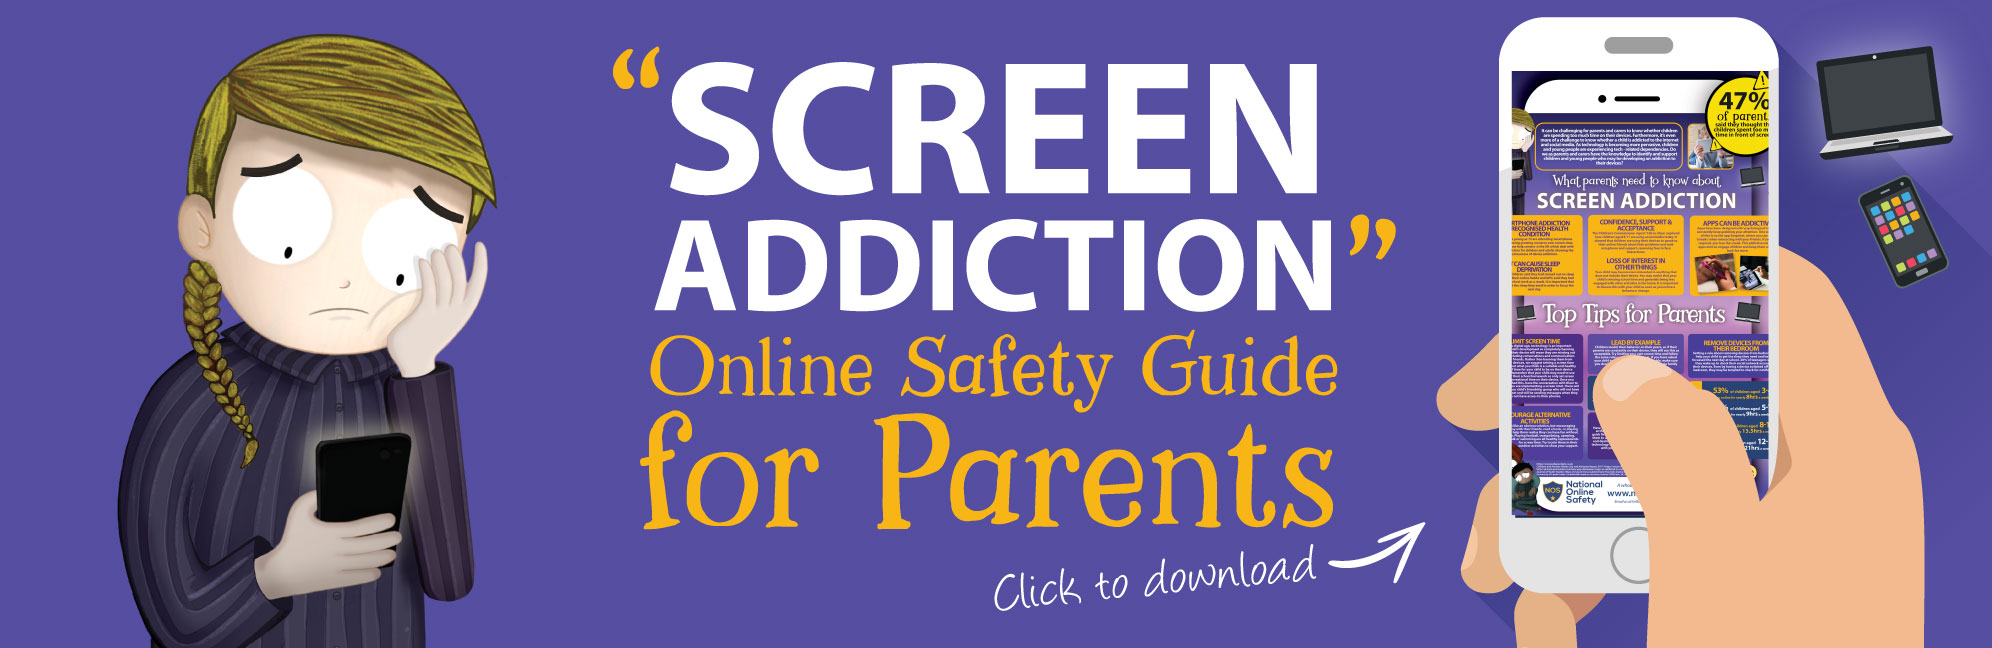 Screen-Addiction-Online-Safety-Parents-Guide-Web-Image-121118-V1